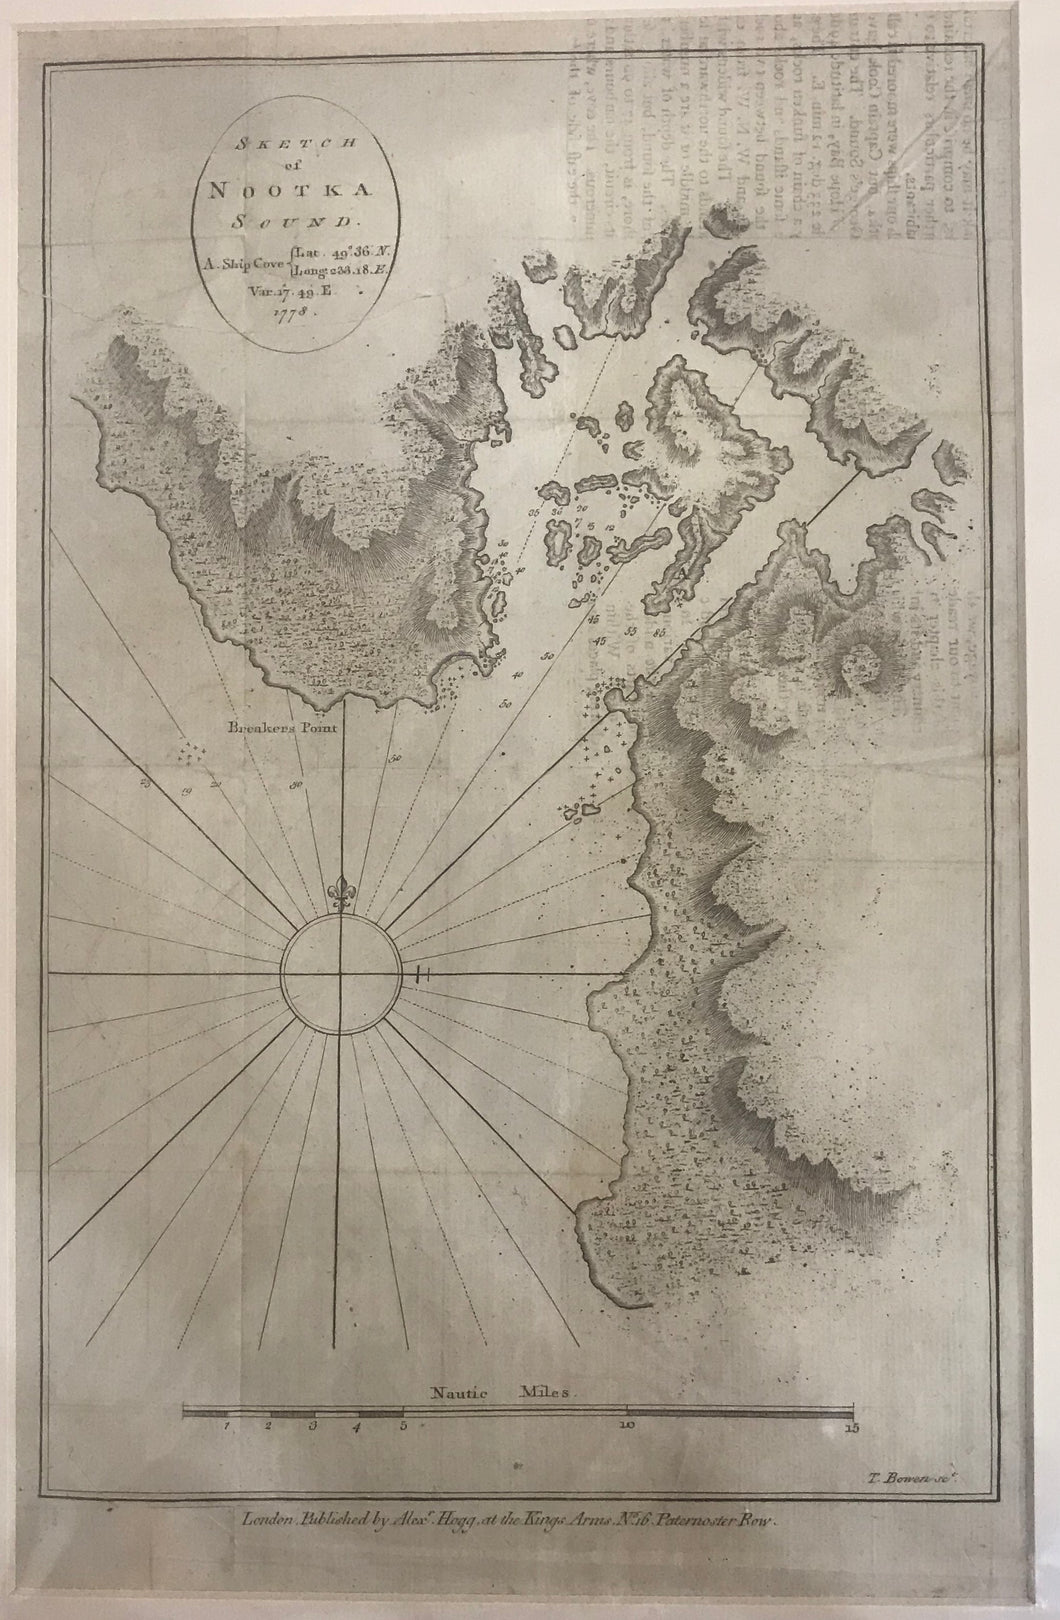 18th Century Sketch Of Nootka Sound, Map, Pub. By Alex Hogg